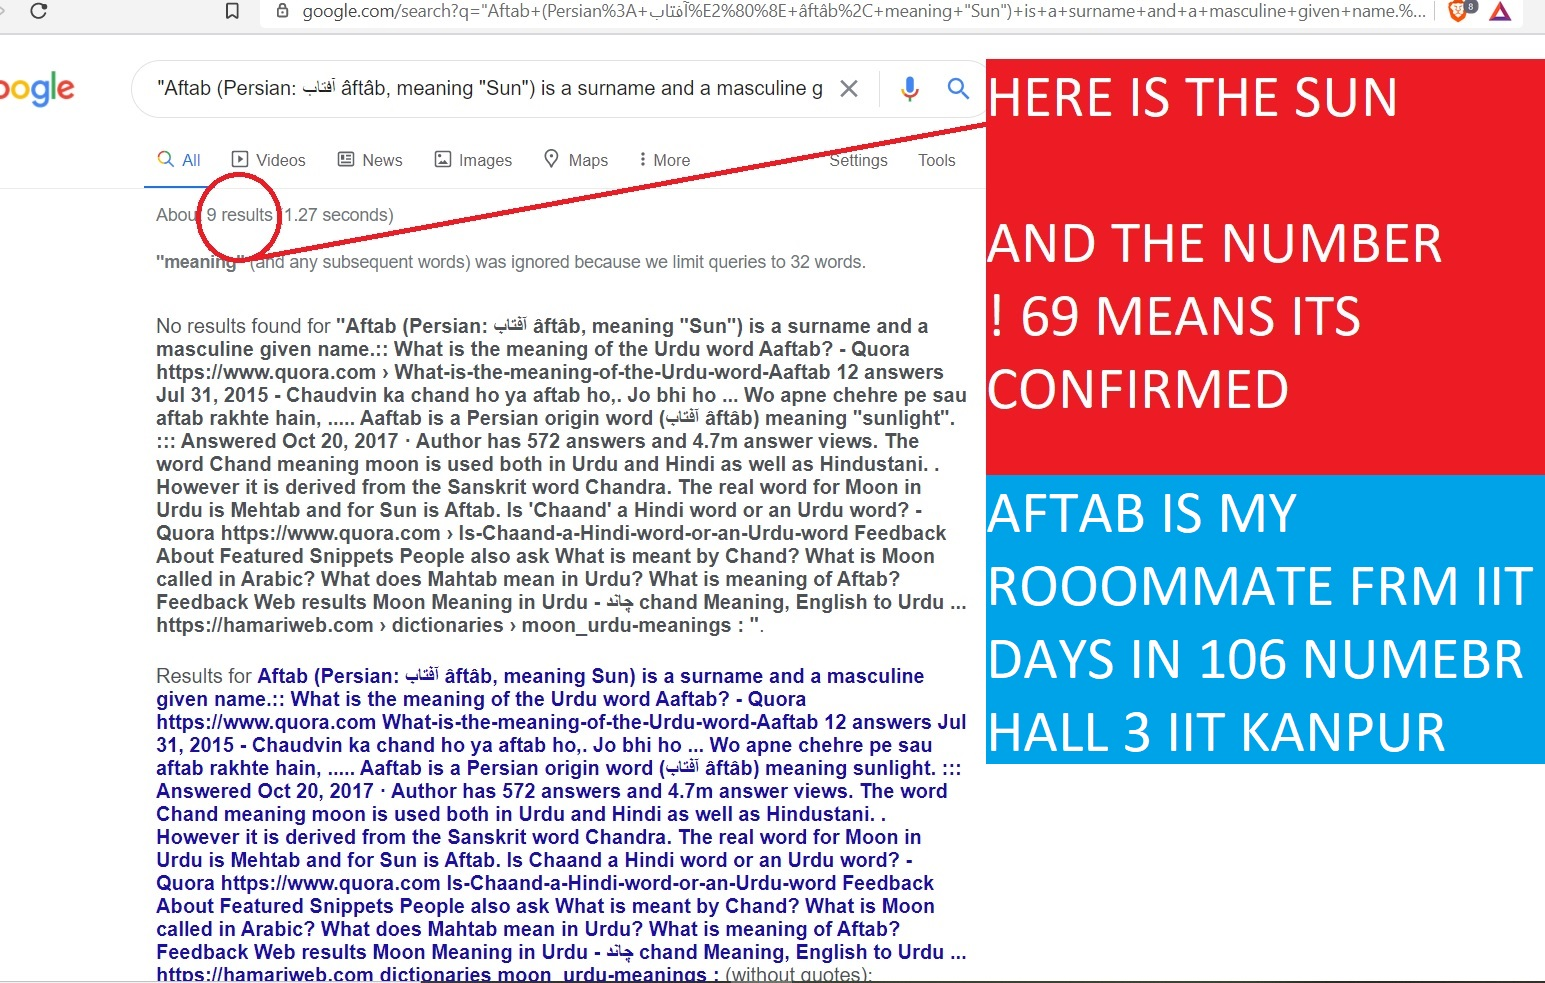 """""""Aftab (Persian: آفتاب âftâb, meaning """"Sun"""") is a surname and a masculine given name.:: What is the meaning of the Urdu word Aaftab? - Quora https://www.quora.com › What-is-the-meaning-of-the-Urdu-word-Aaftab 12 answers Jul 31, 2015 - Chaudvin ka chand ho ya aftab ho,. Jo bhi ho ... Wo apne chehre pe sau aftab rakhte hain, ..... Aaftab is a Persian origin word (آفتاب âftâb) meaning """"sunlight"""". ::: Answered Oct 20, 2017 · Author has 572 answers and 4.7m answer views. The word Chand meaning moon is used both in Urdu and Hindi as well as Hindustani. . However it is derived from the Sanskrit word Chandra. The real word for Moon in Urdu is Mehtab and for Sun is Aftab. Is 'Chaand' a Hindi word or an Urdu word? - Quora https://www.quora.com › Is-Chaand-a-Hindi-word-or-an-Urdu-word Feedback About Featured Snippets People also ask What is meant by Chand? What is Moon called in Arabic? What does Mahtab mean in Urdu? What is meaning of Aftab? Feedback Web results Moon Meaning in Urdu - چاند chand Meaning, English to Urdu ... https://hamariweb.com › dictionaries › moon_urdu-meanings : """"AFTAB IS MY ROOOMMATE FRM IIT DAYS IN 106 NUMEBR HALL 3 IIT KANPUR"""